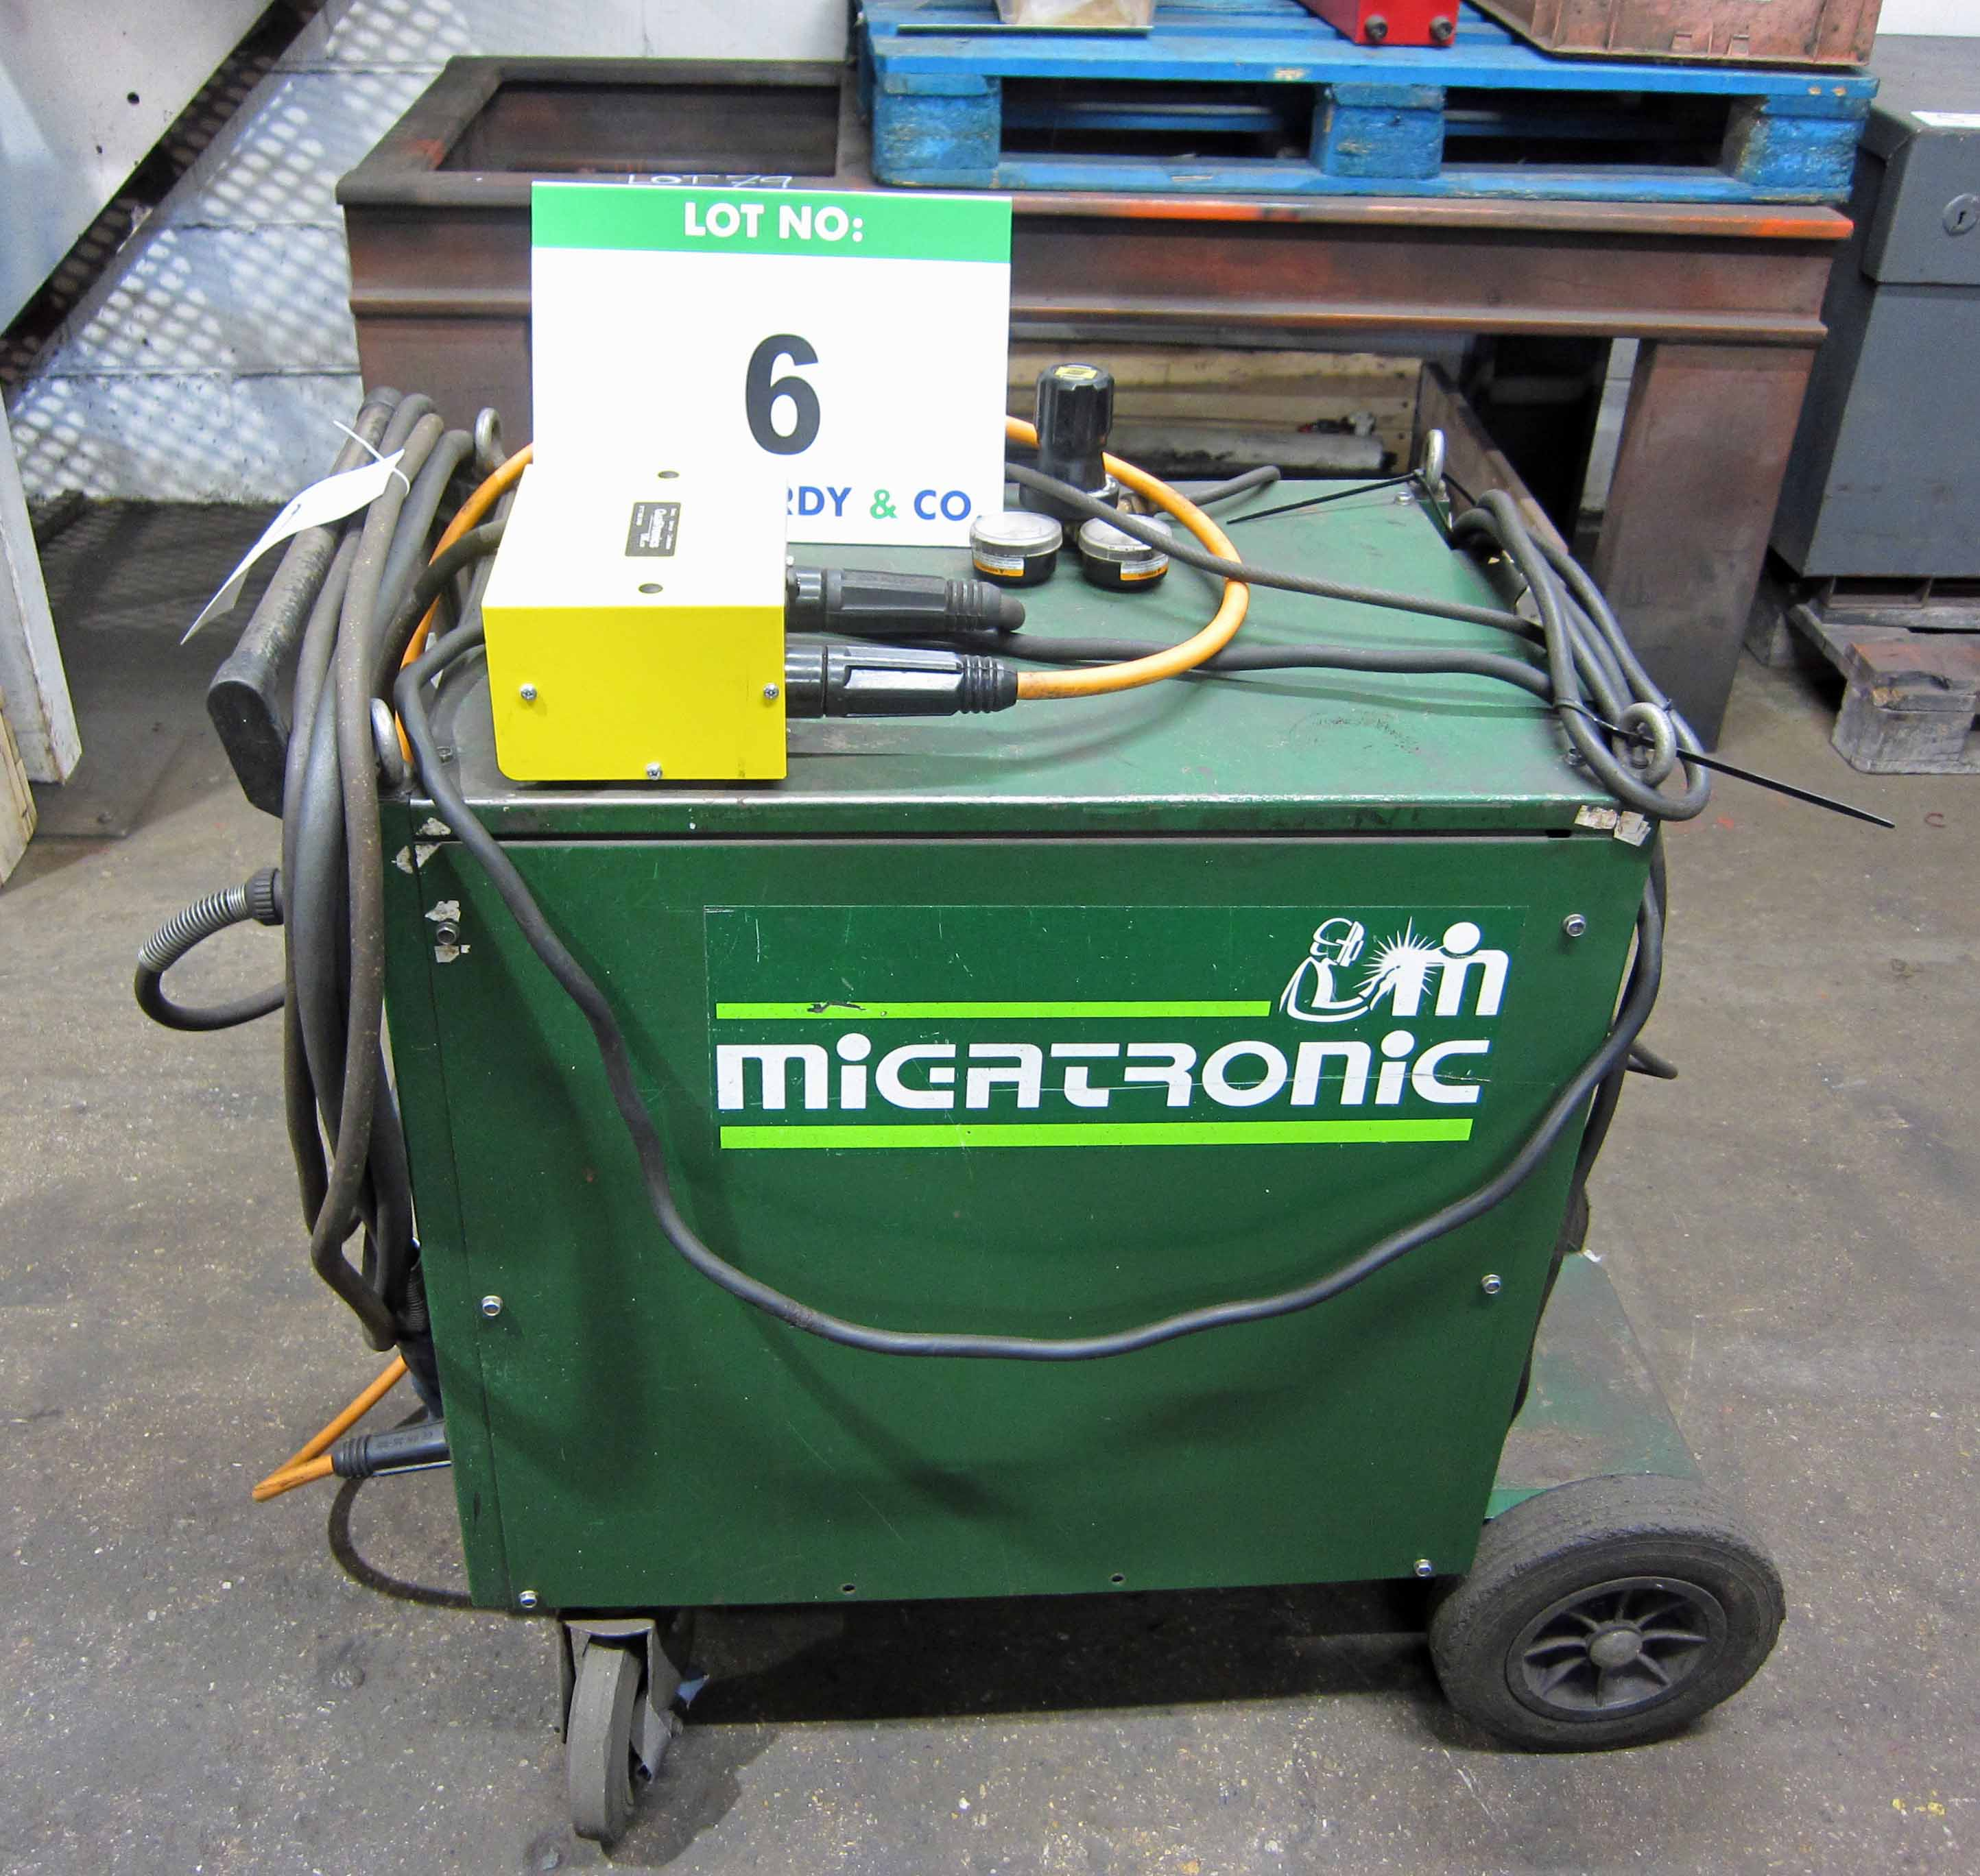 A MIGTRONIC Model Dyna Mig 335 Mig Welder (KDO335) complete with QUALITRONICS Voltage and Amp and - Image 2 of 7